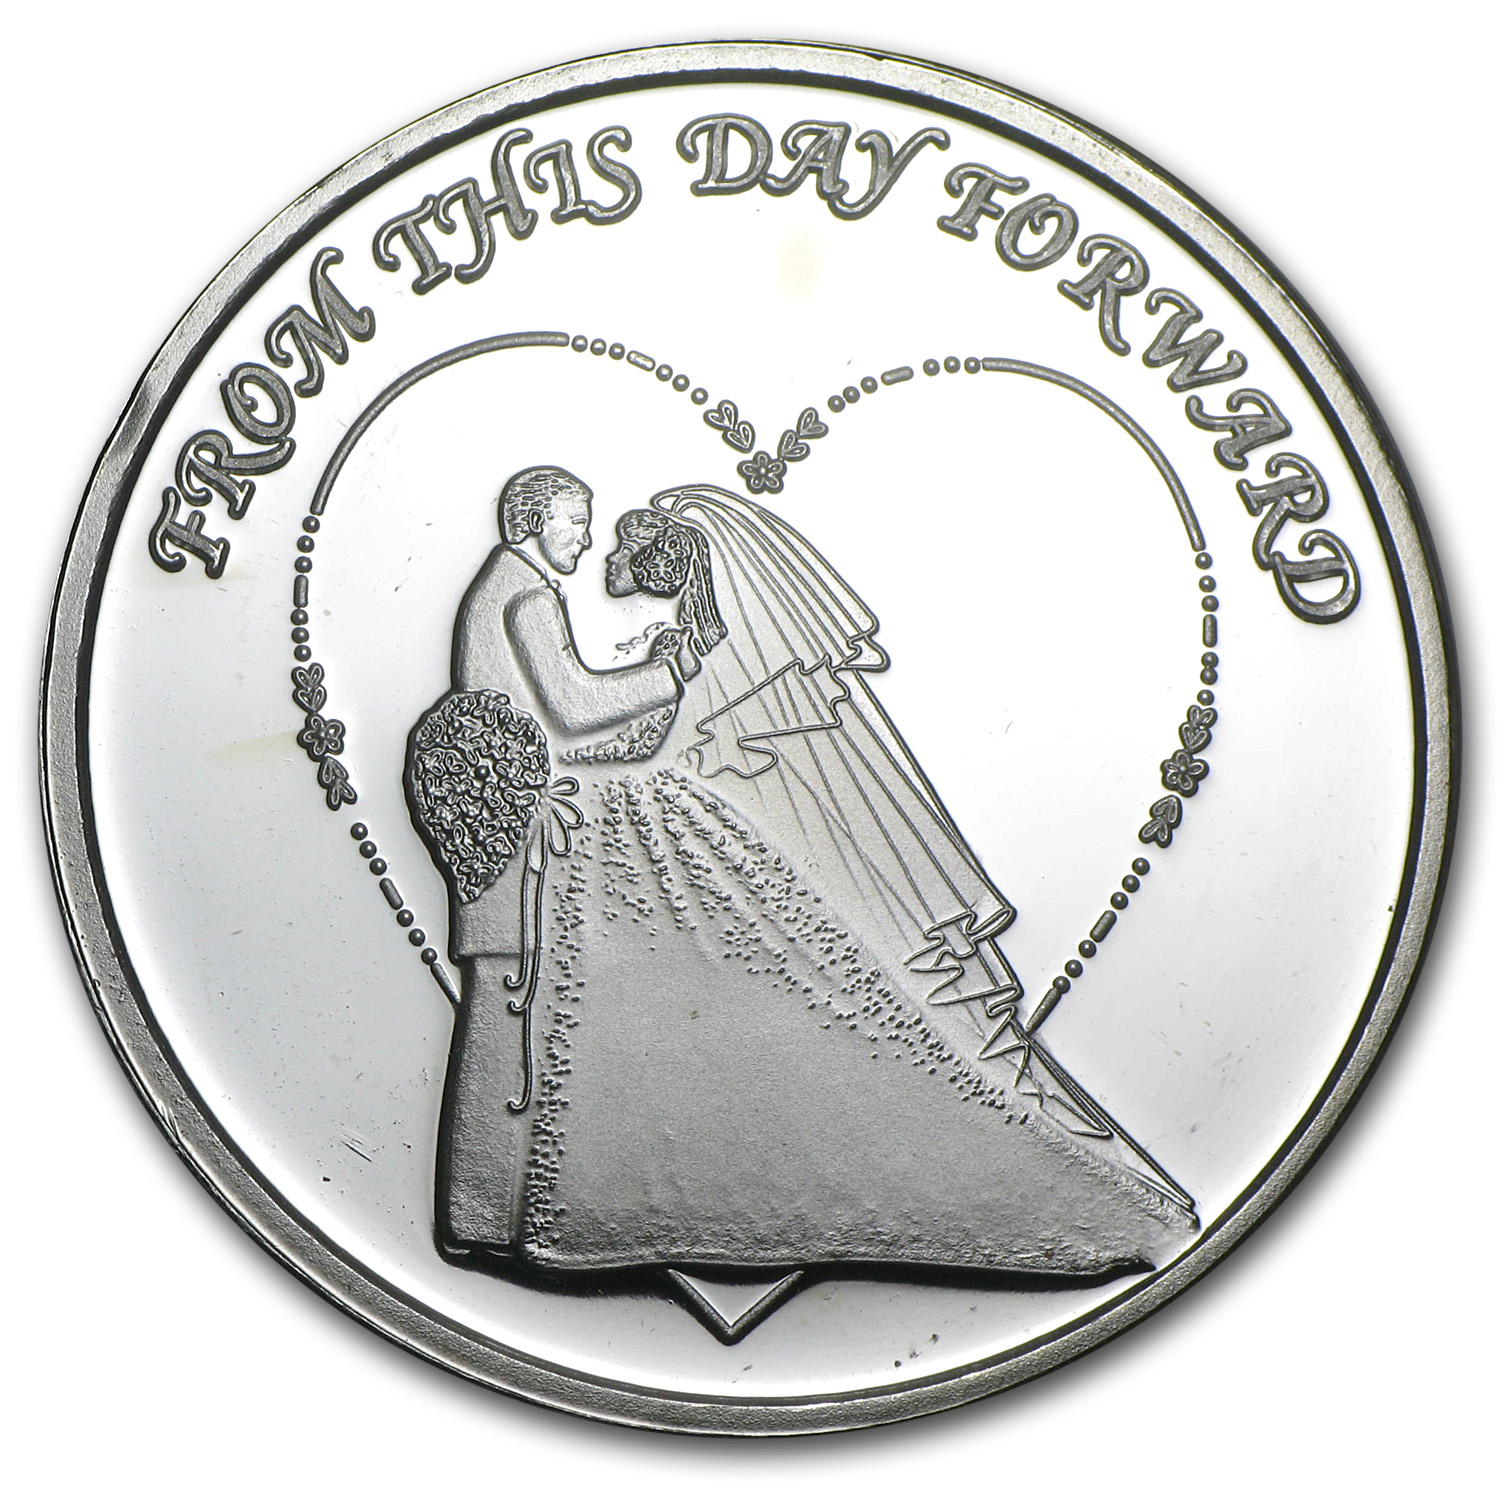 1 oz Silver Rounds - 2014 Wedding (w/Box & Capsule)